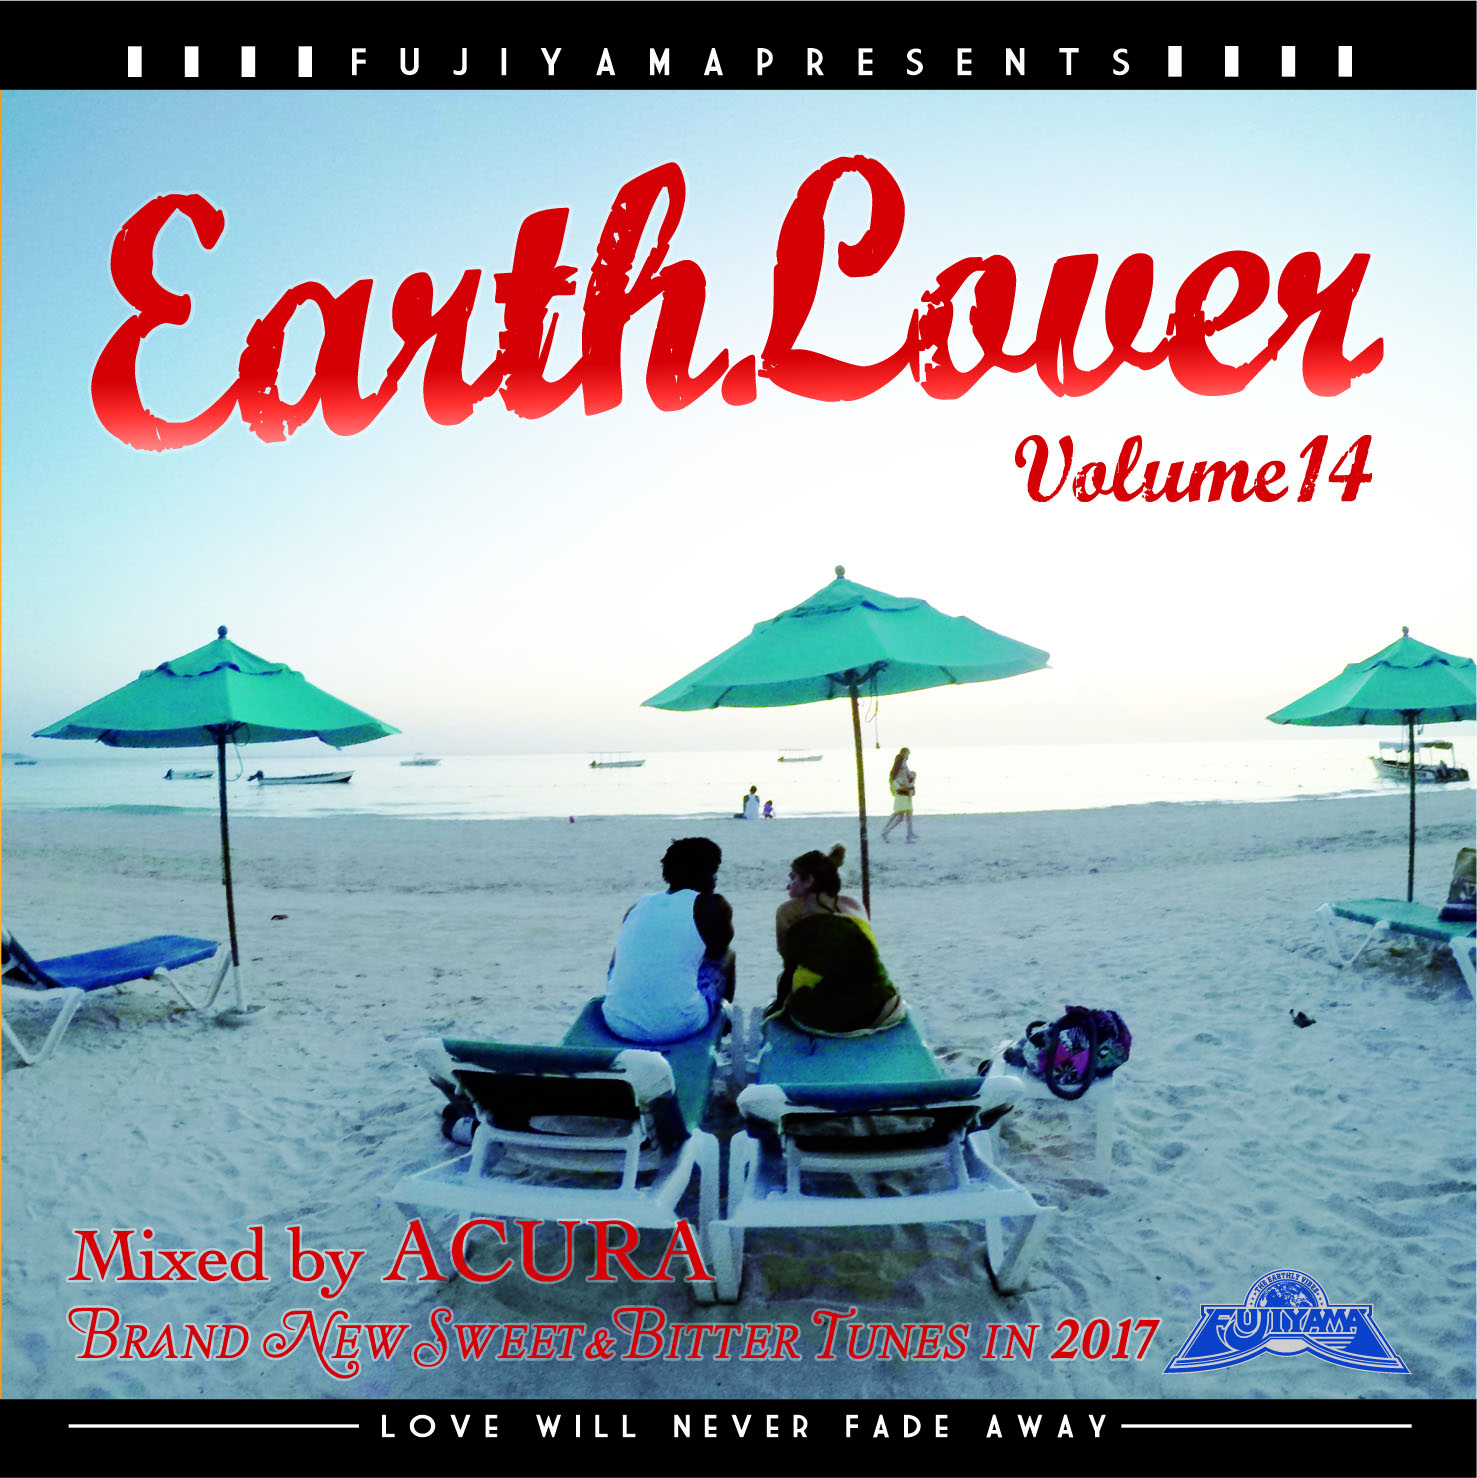 EARTH LOVER Vol.14 : Brand New Sweet & Bitter Tunes in 2017